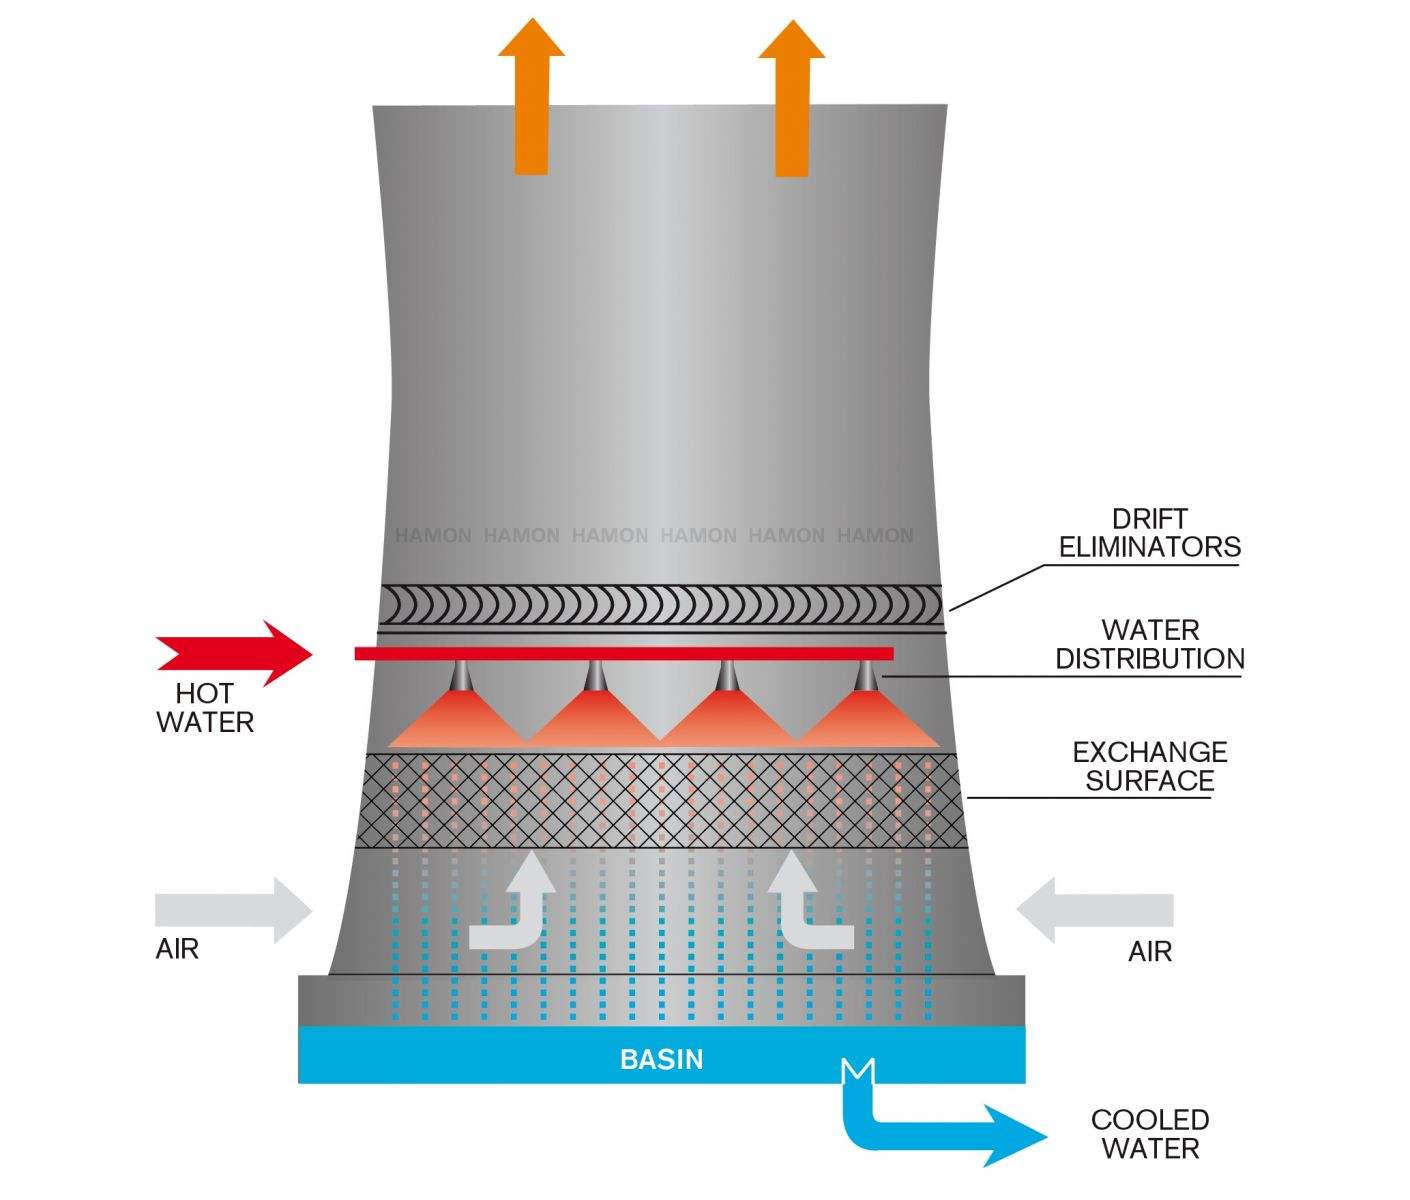 cooling towers Archives - All Kote Lining, Inc. Blog